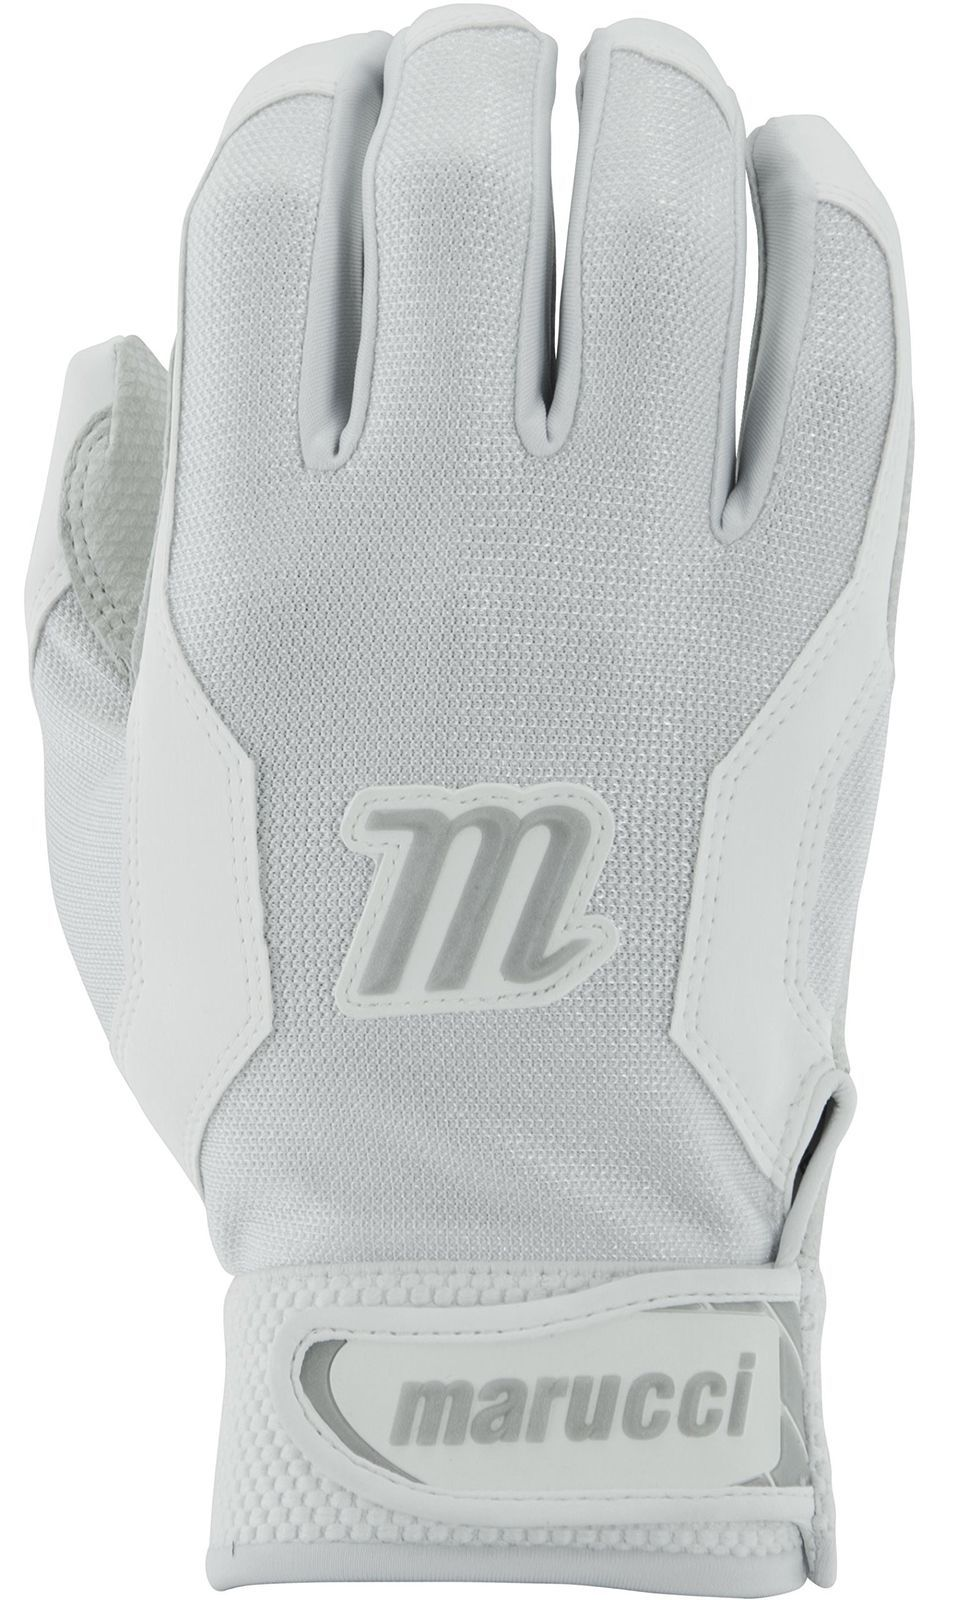 Marucci Adult Quest Baseball Batting Gloves, White, X